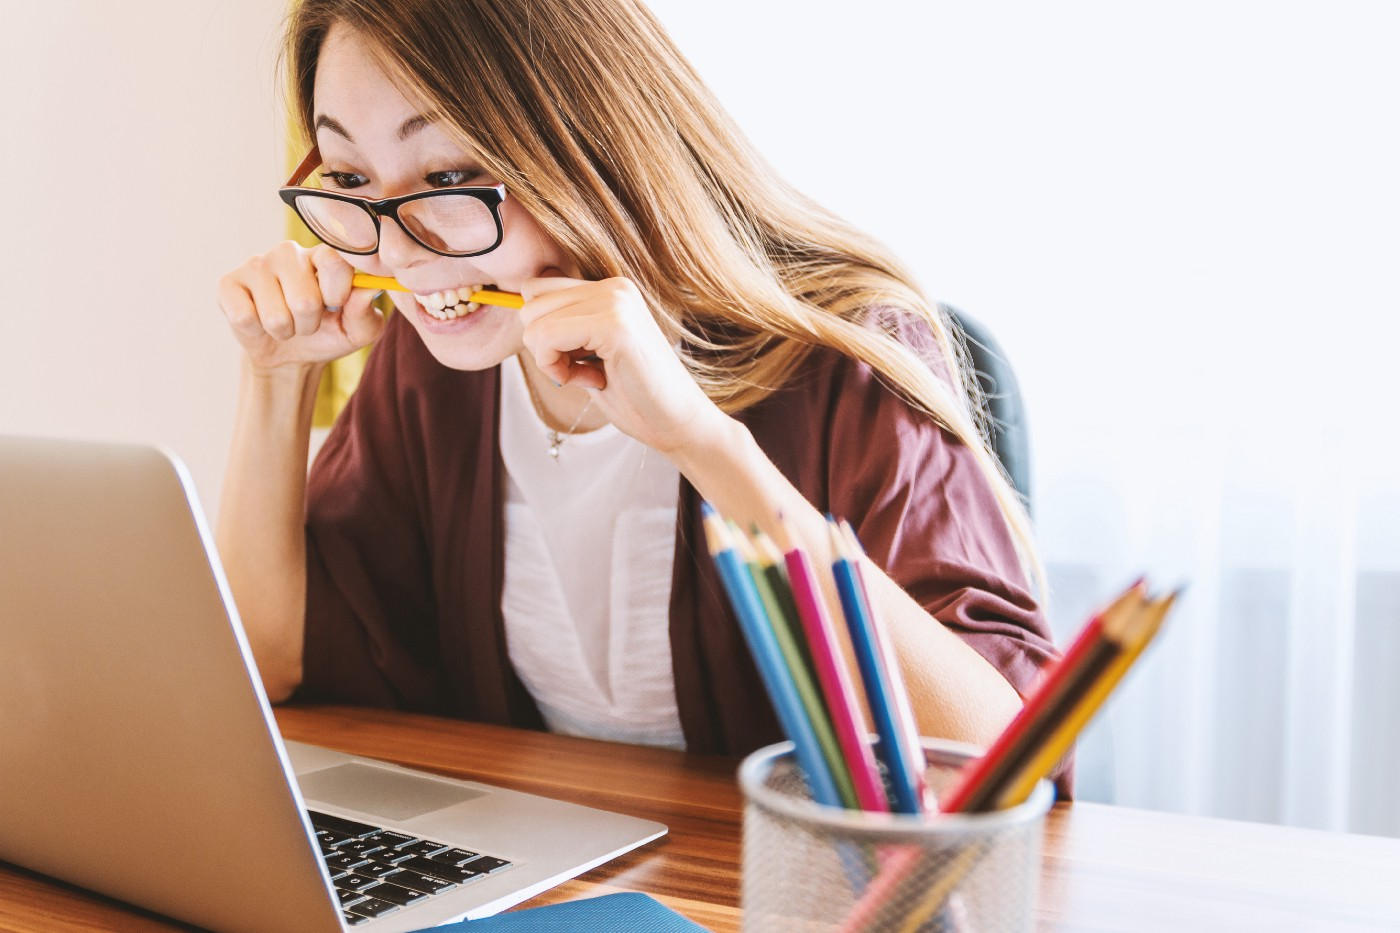 woman sitting at desk in front of laptop biting pencil in clear frustration